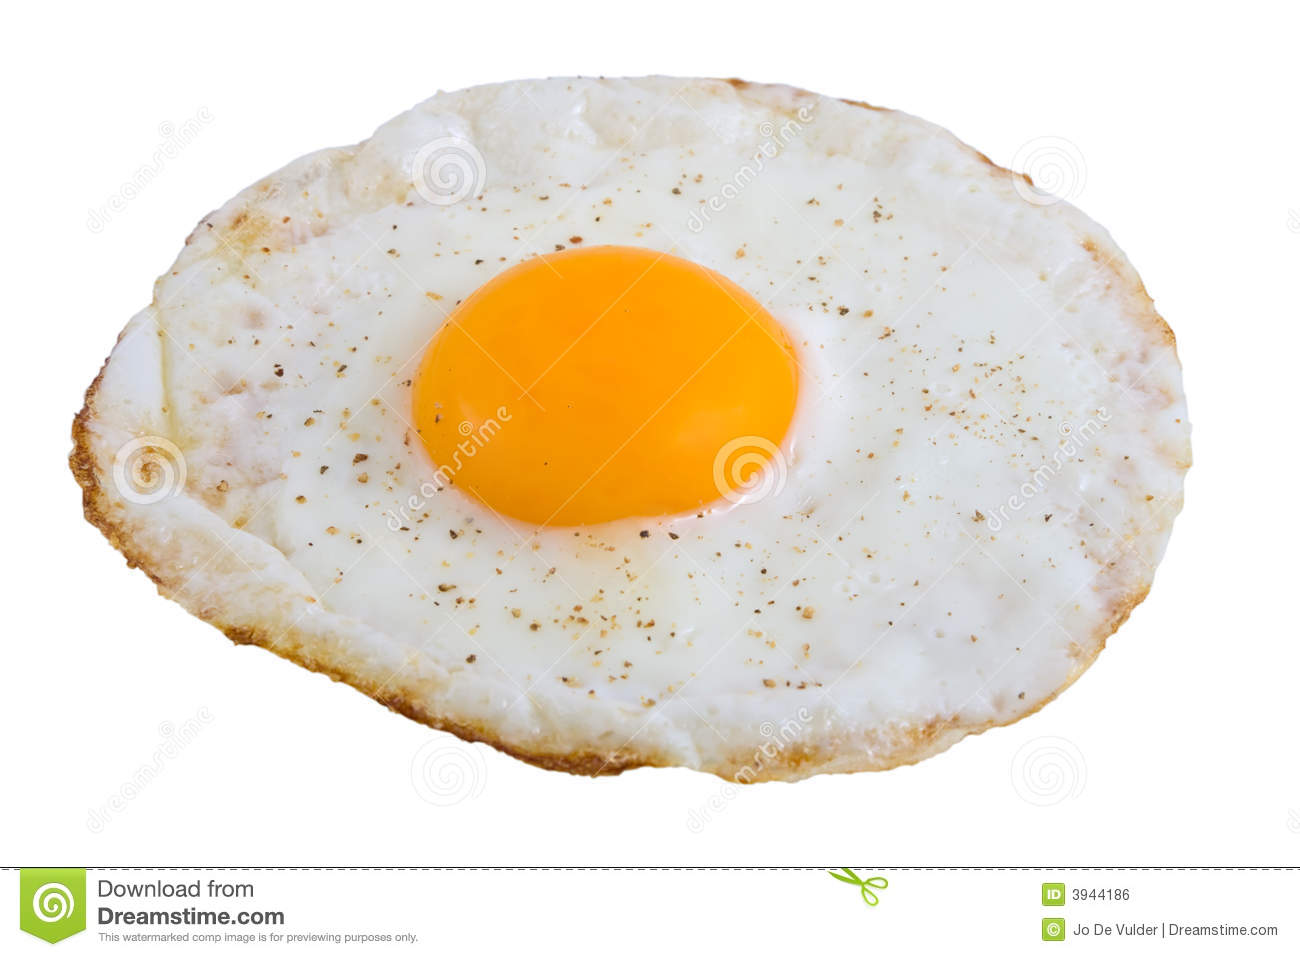 Closeup of Fried Egg isolated over white background.